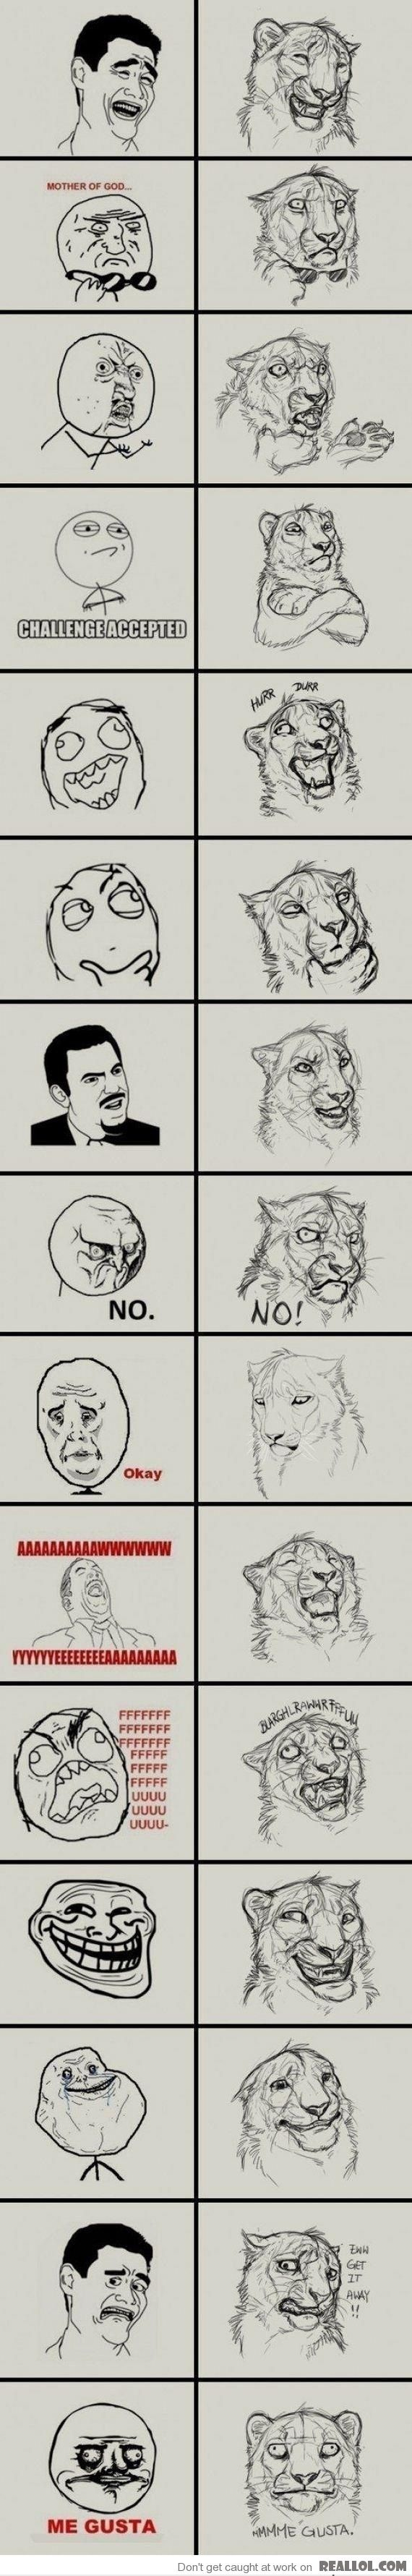 Tiger versions of Rage Comic faces! The last ones are the best ones. Haha